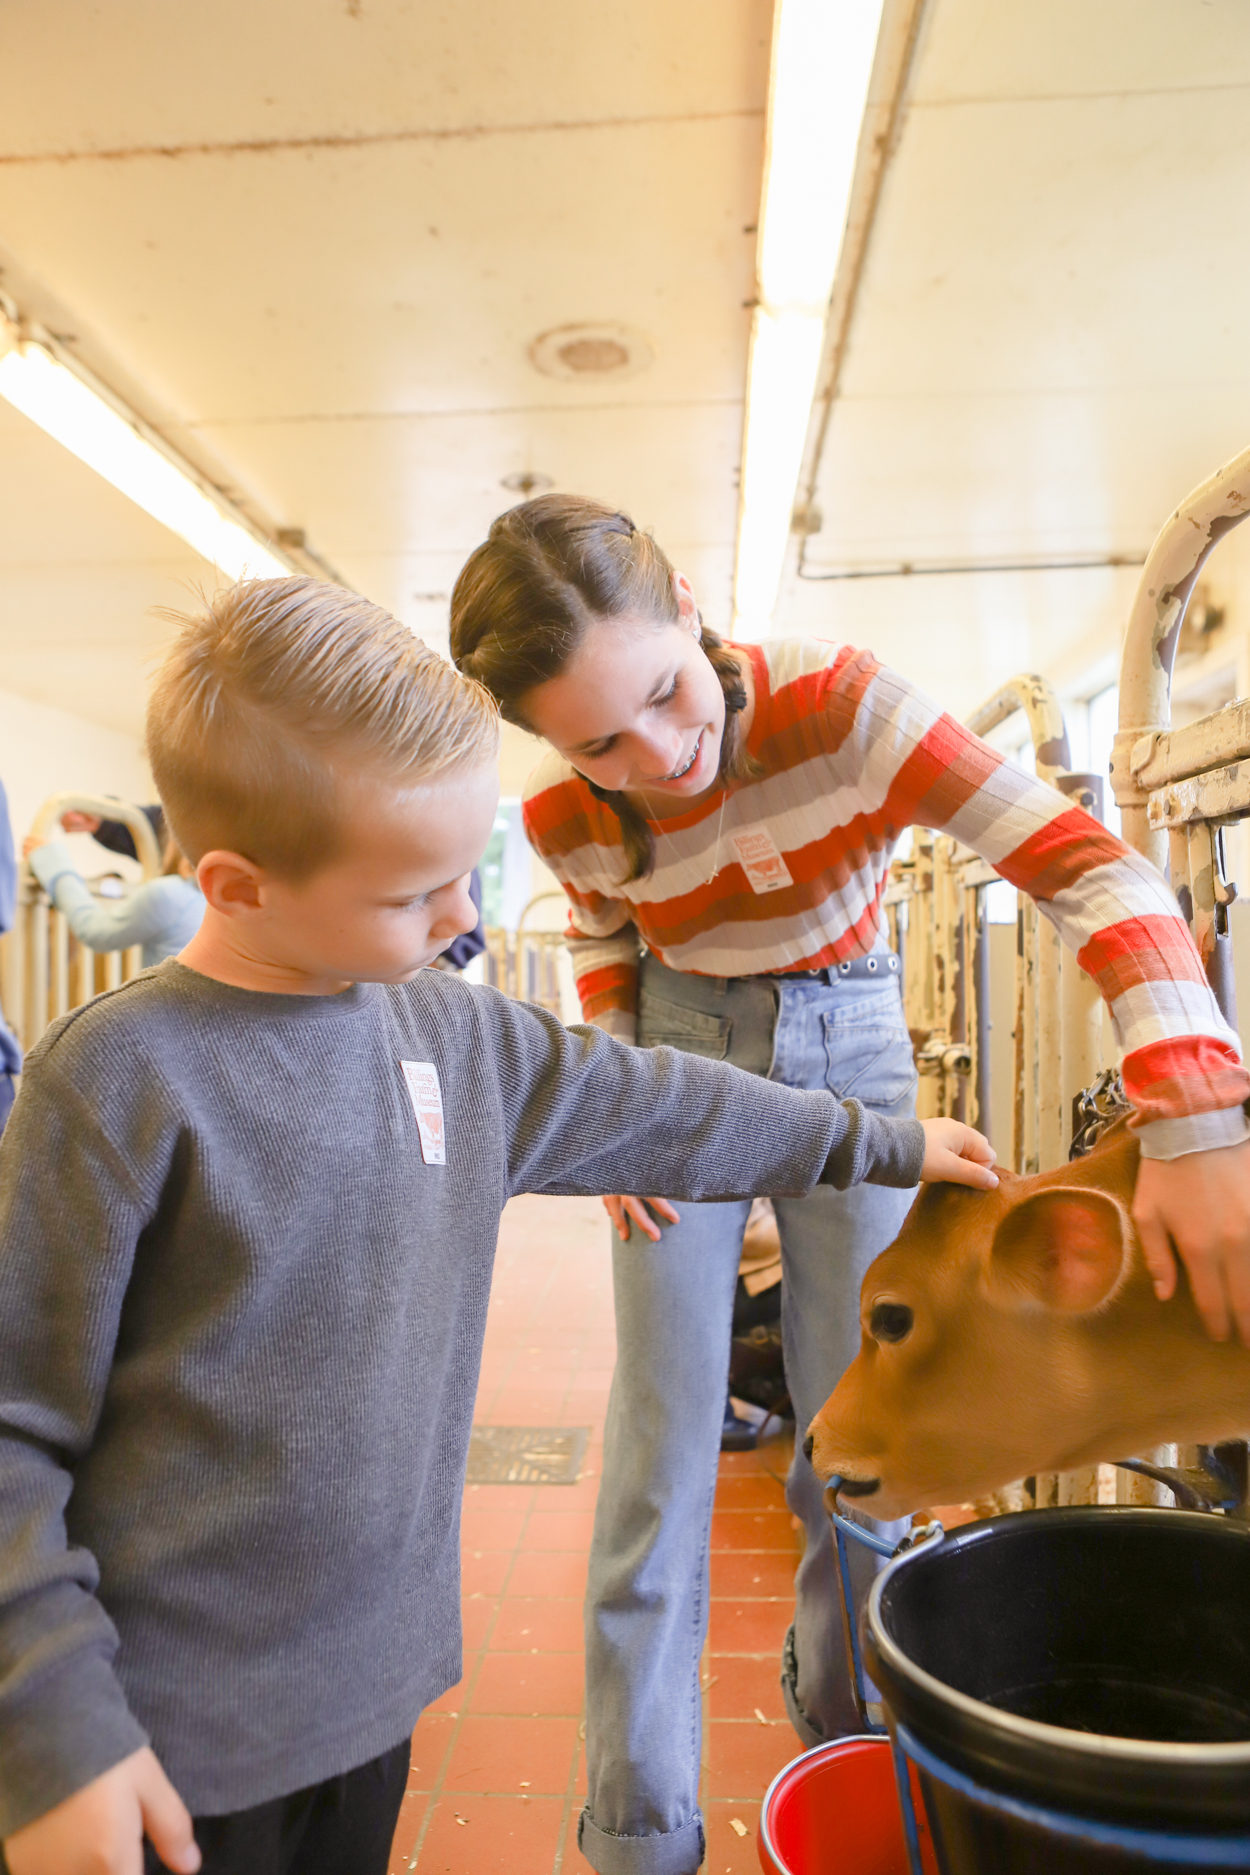 Young boy and girl petting a calf at Billings Dairy Farm in Woodstock Vermont